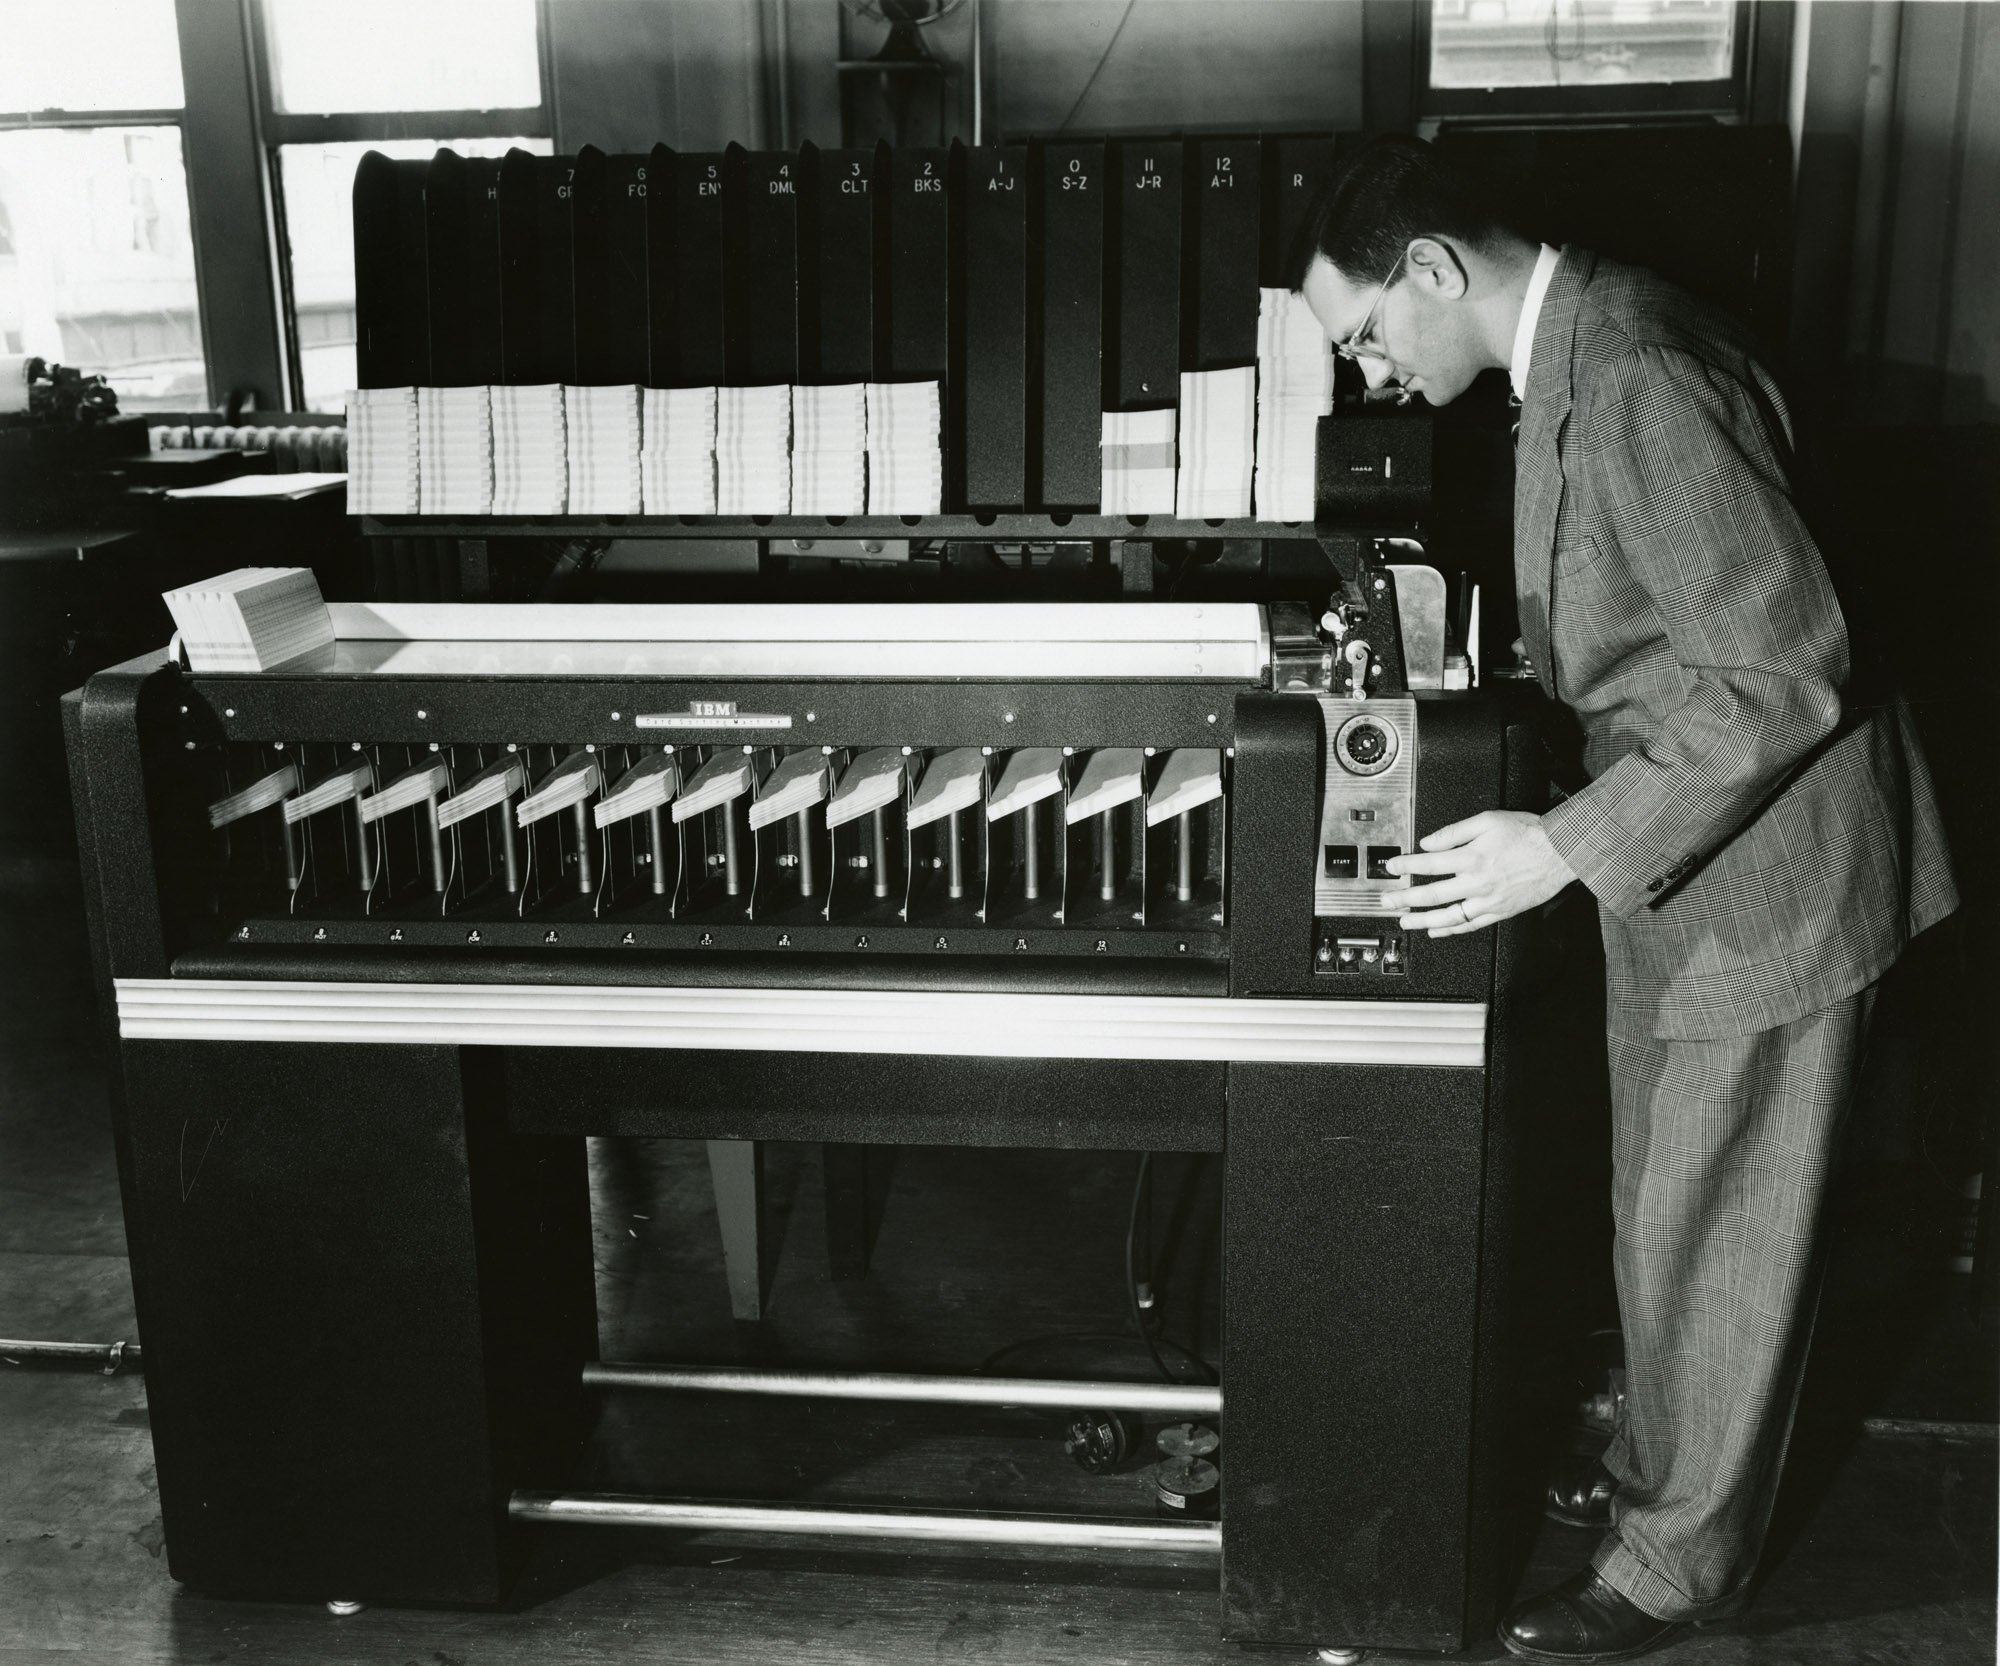 Close acquaintance with an electromechanical punch card sorter (excursion to the beginning of the 20th century)